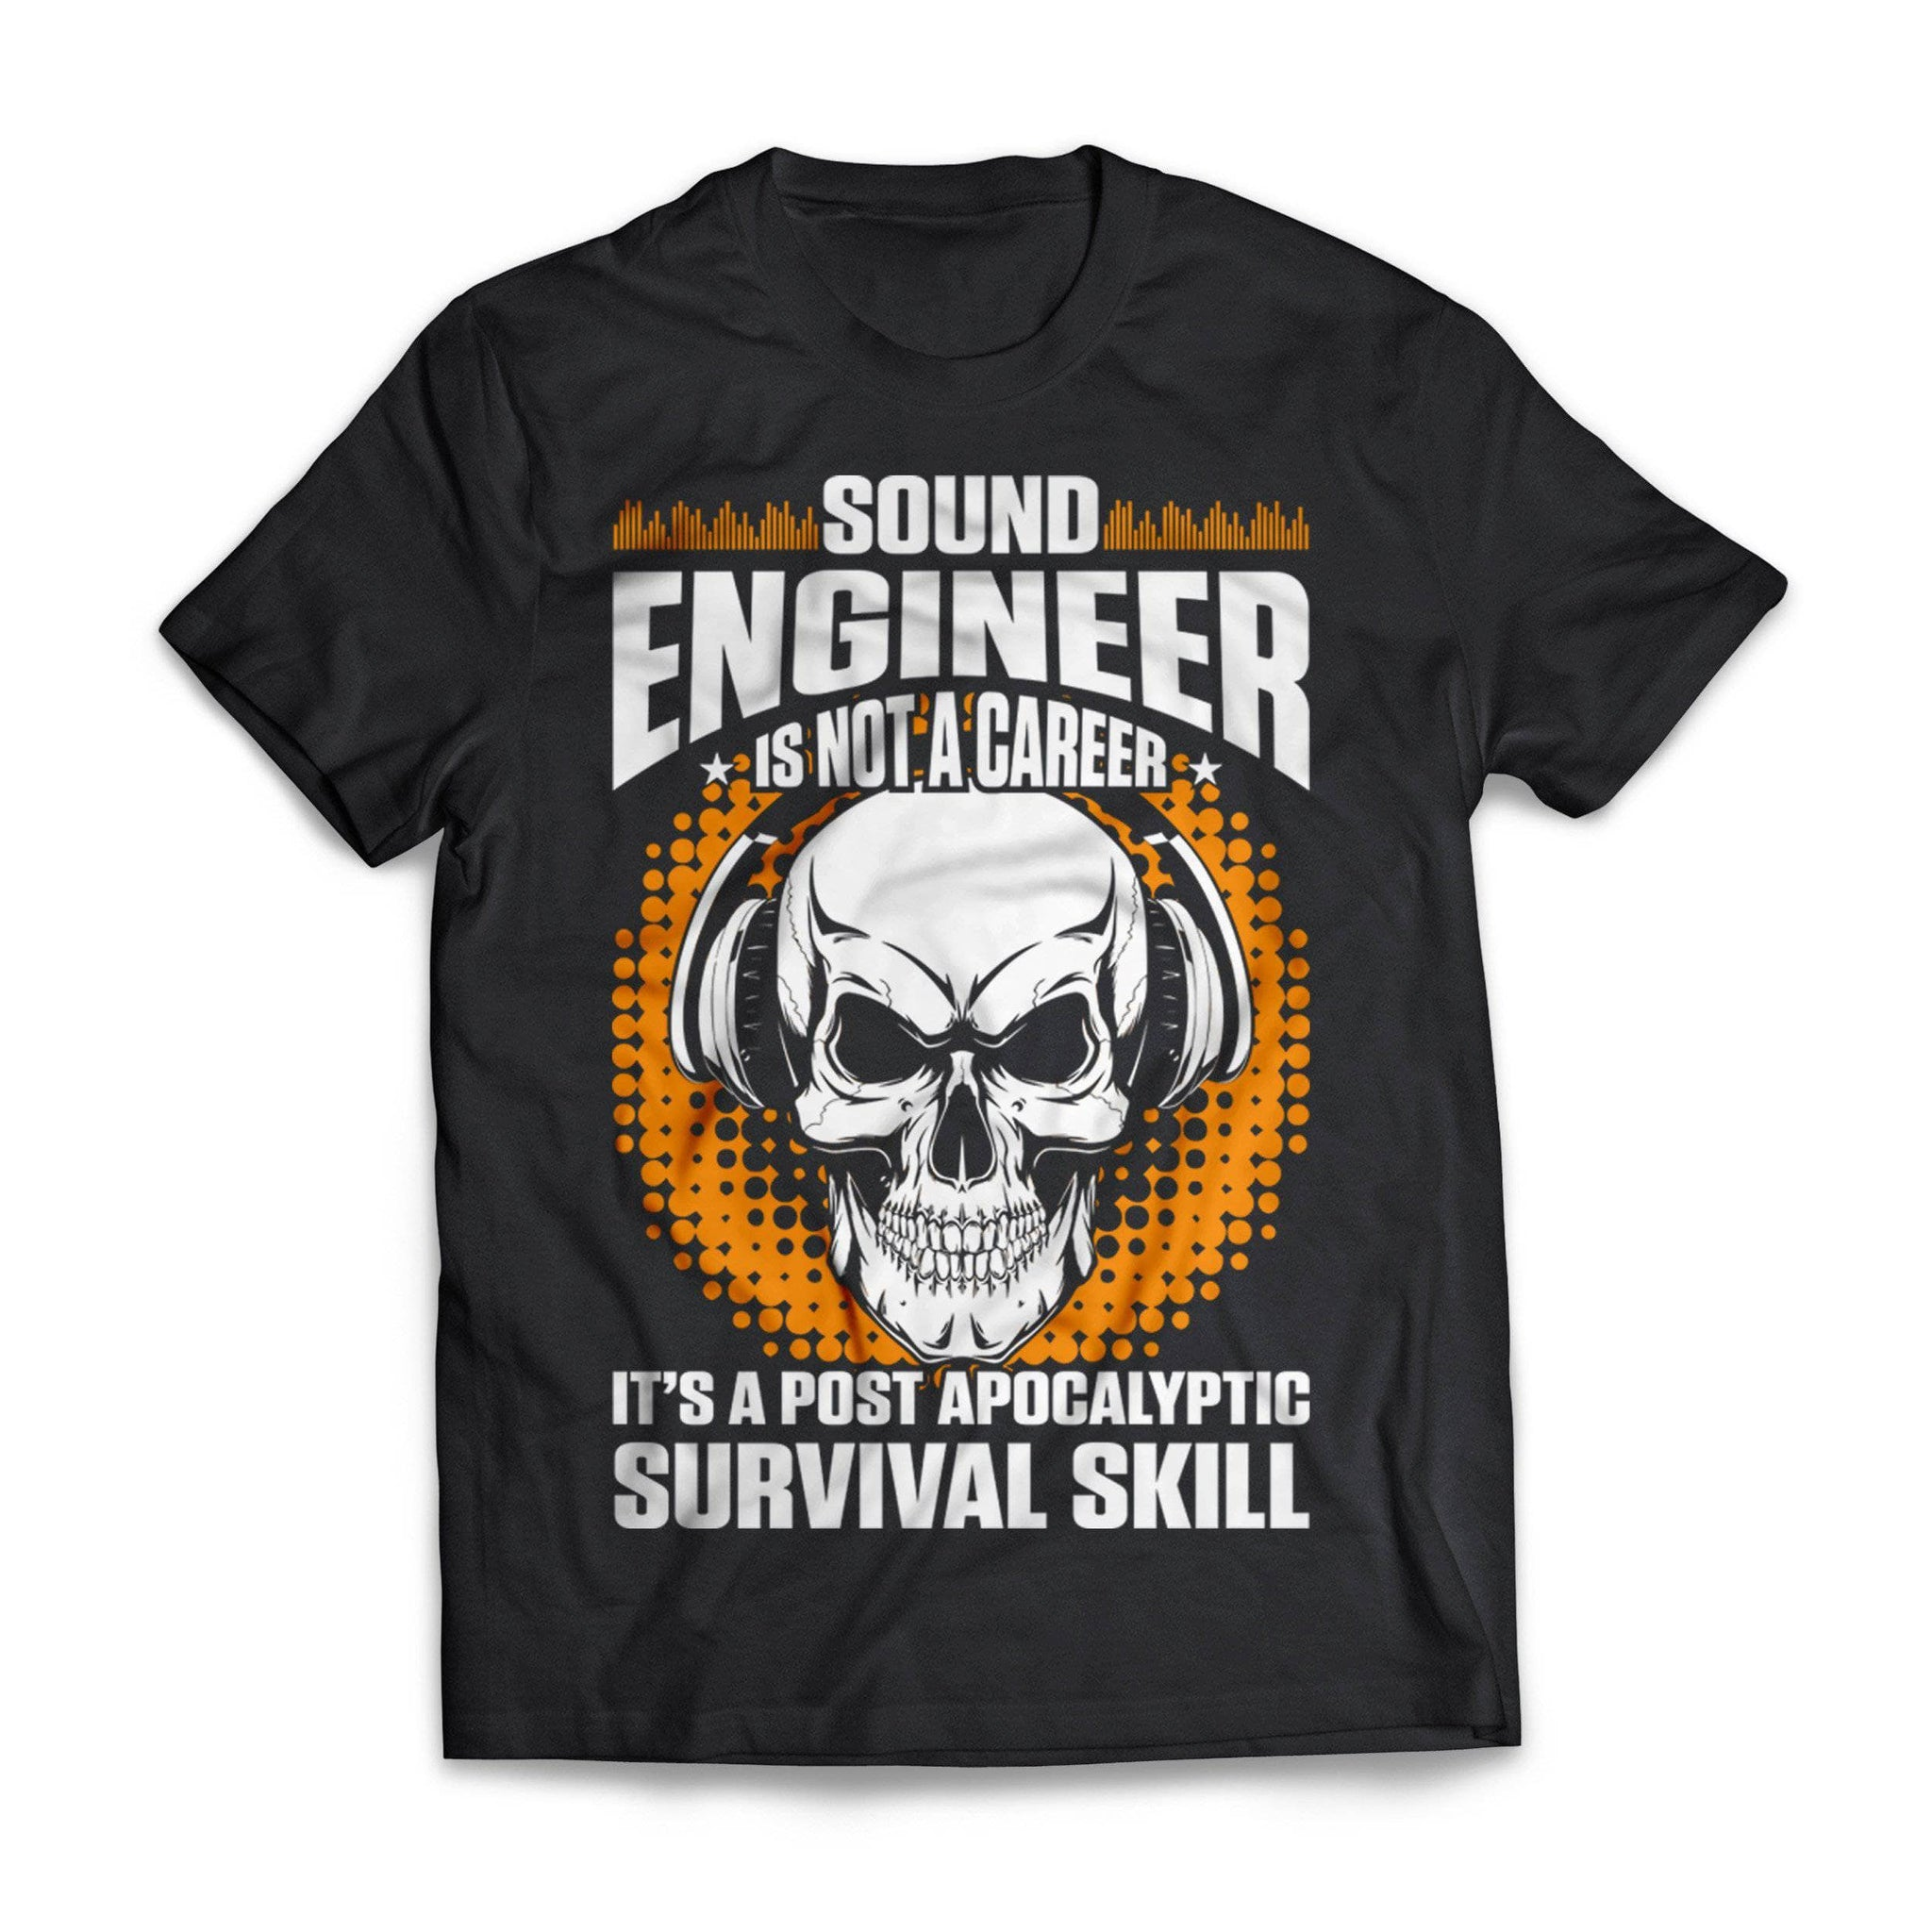 Audio Engineer Survival Skill